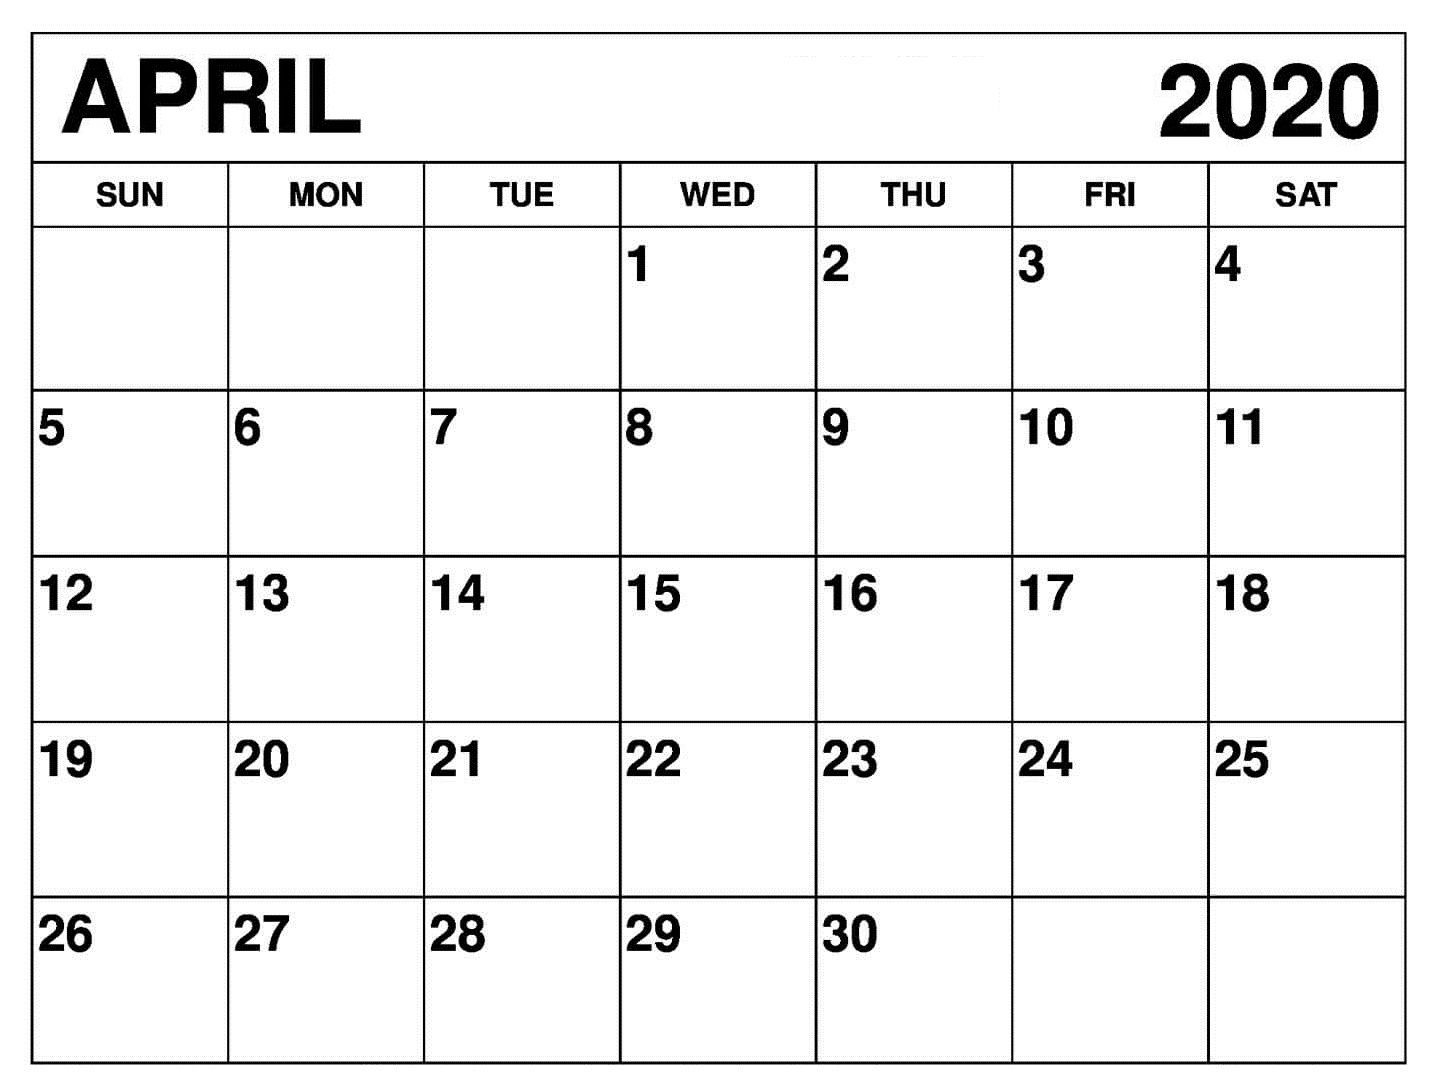 April 2020 Calendar Wallpaper For Wall | Free Printable